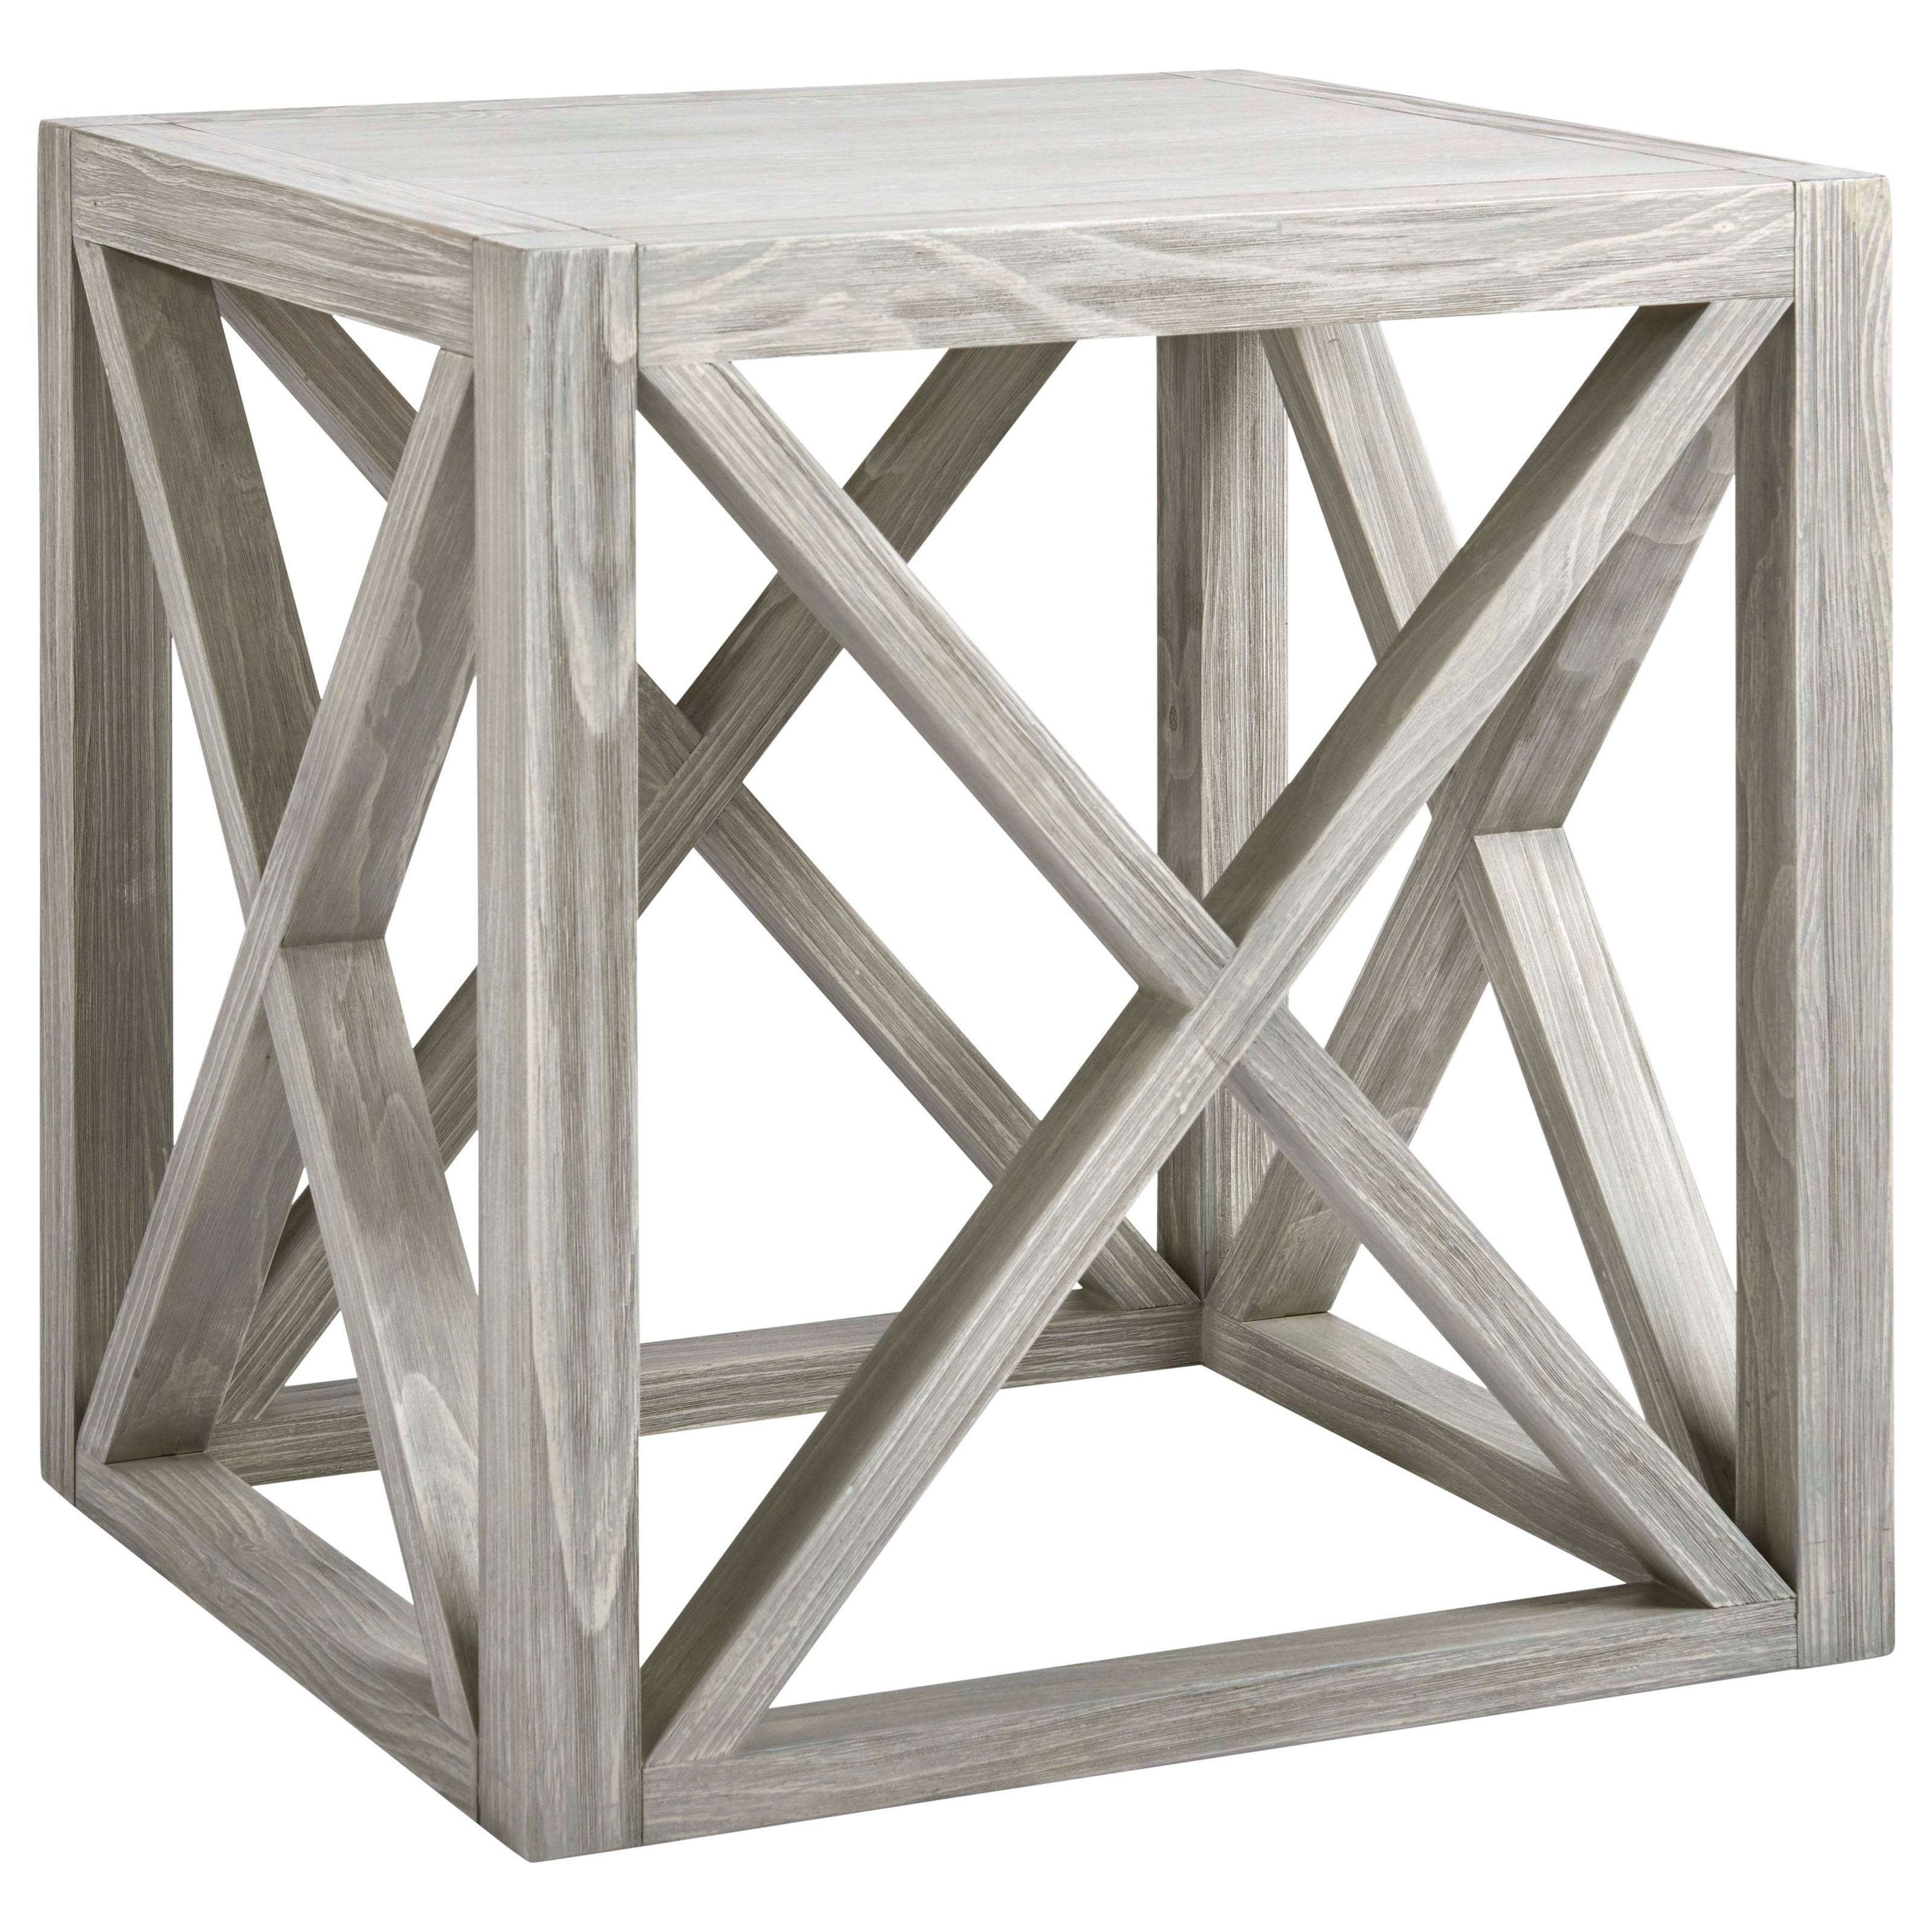 Coastal Living Home - Escape Boardwalk End Table by Universal at Suburban Furniture